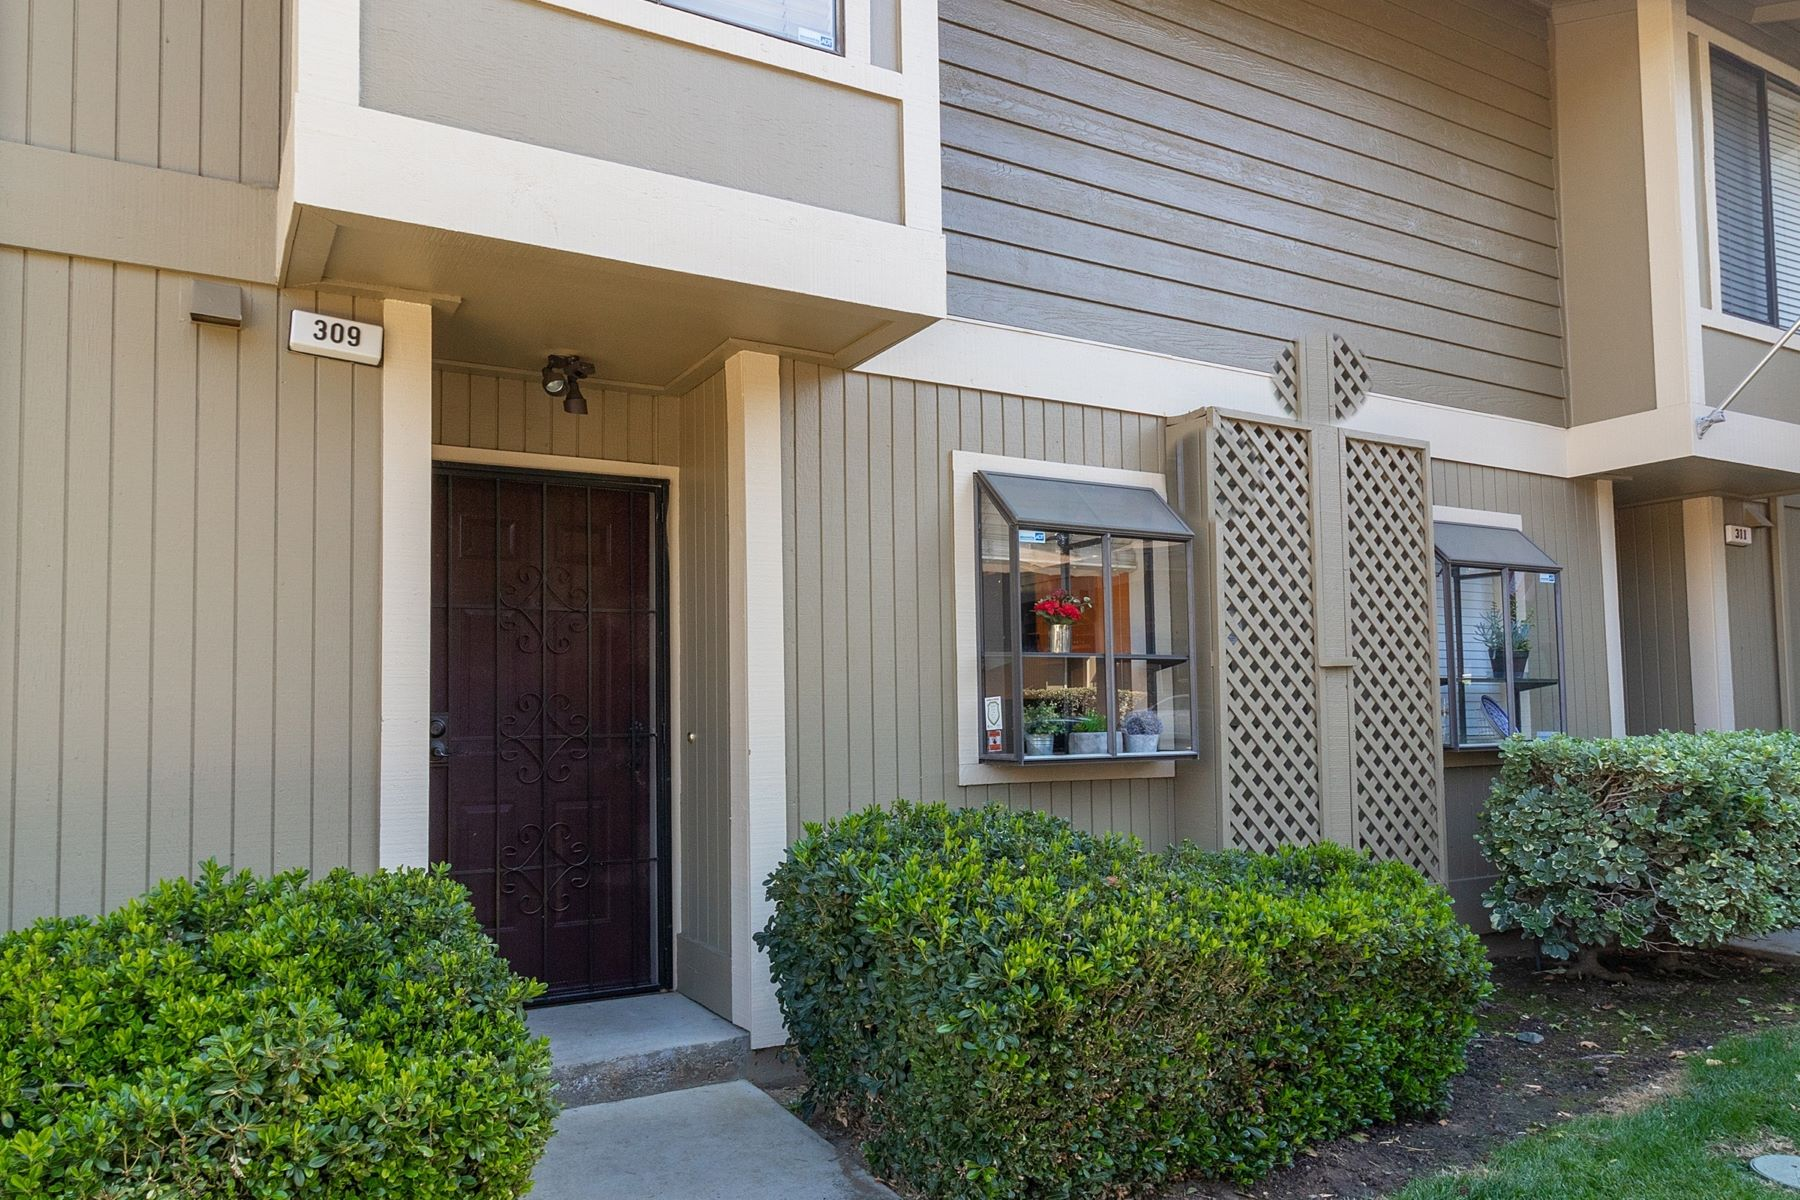 Condominiums for Sale at Updated Eastgate Condo 309 Eastgate Lane Martinez, California 94553 United States